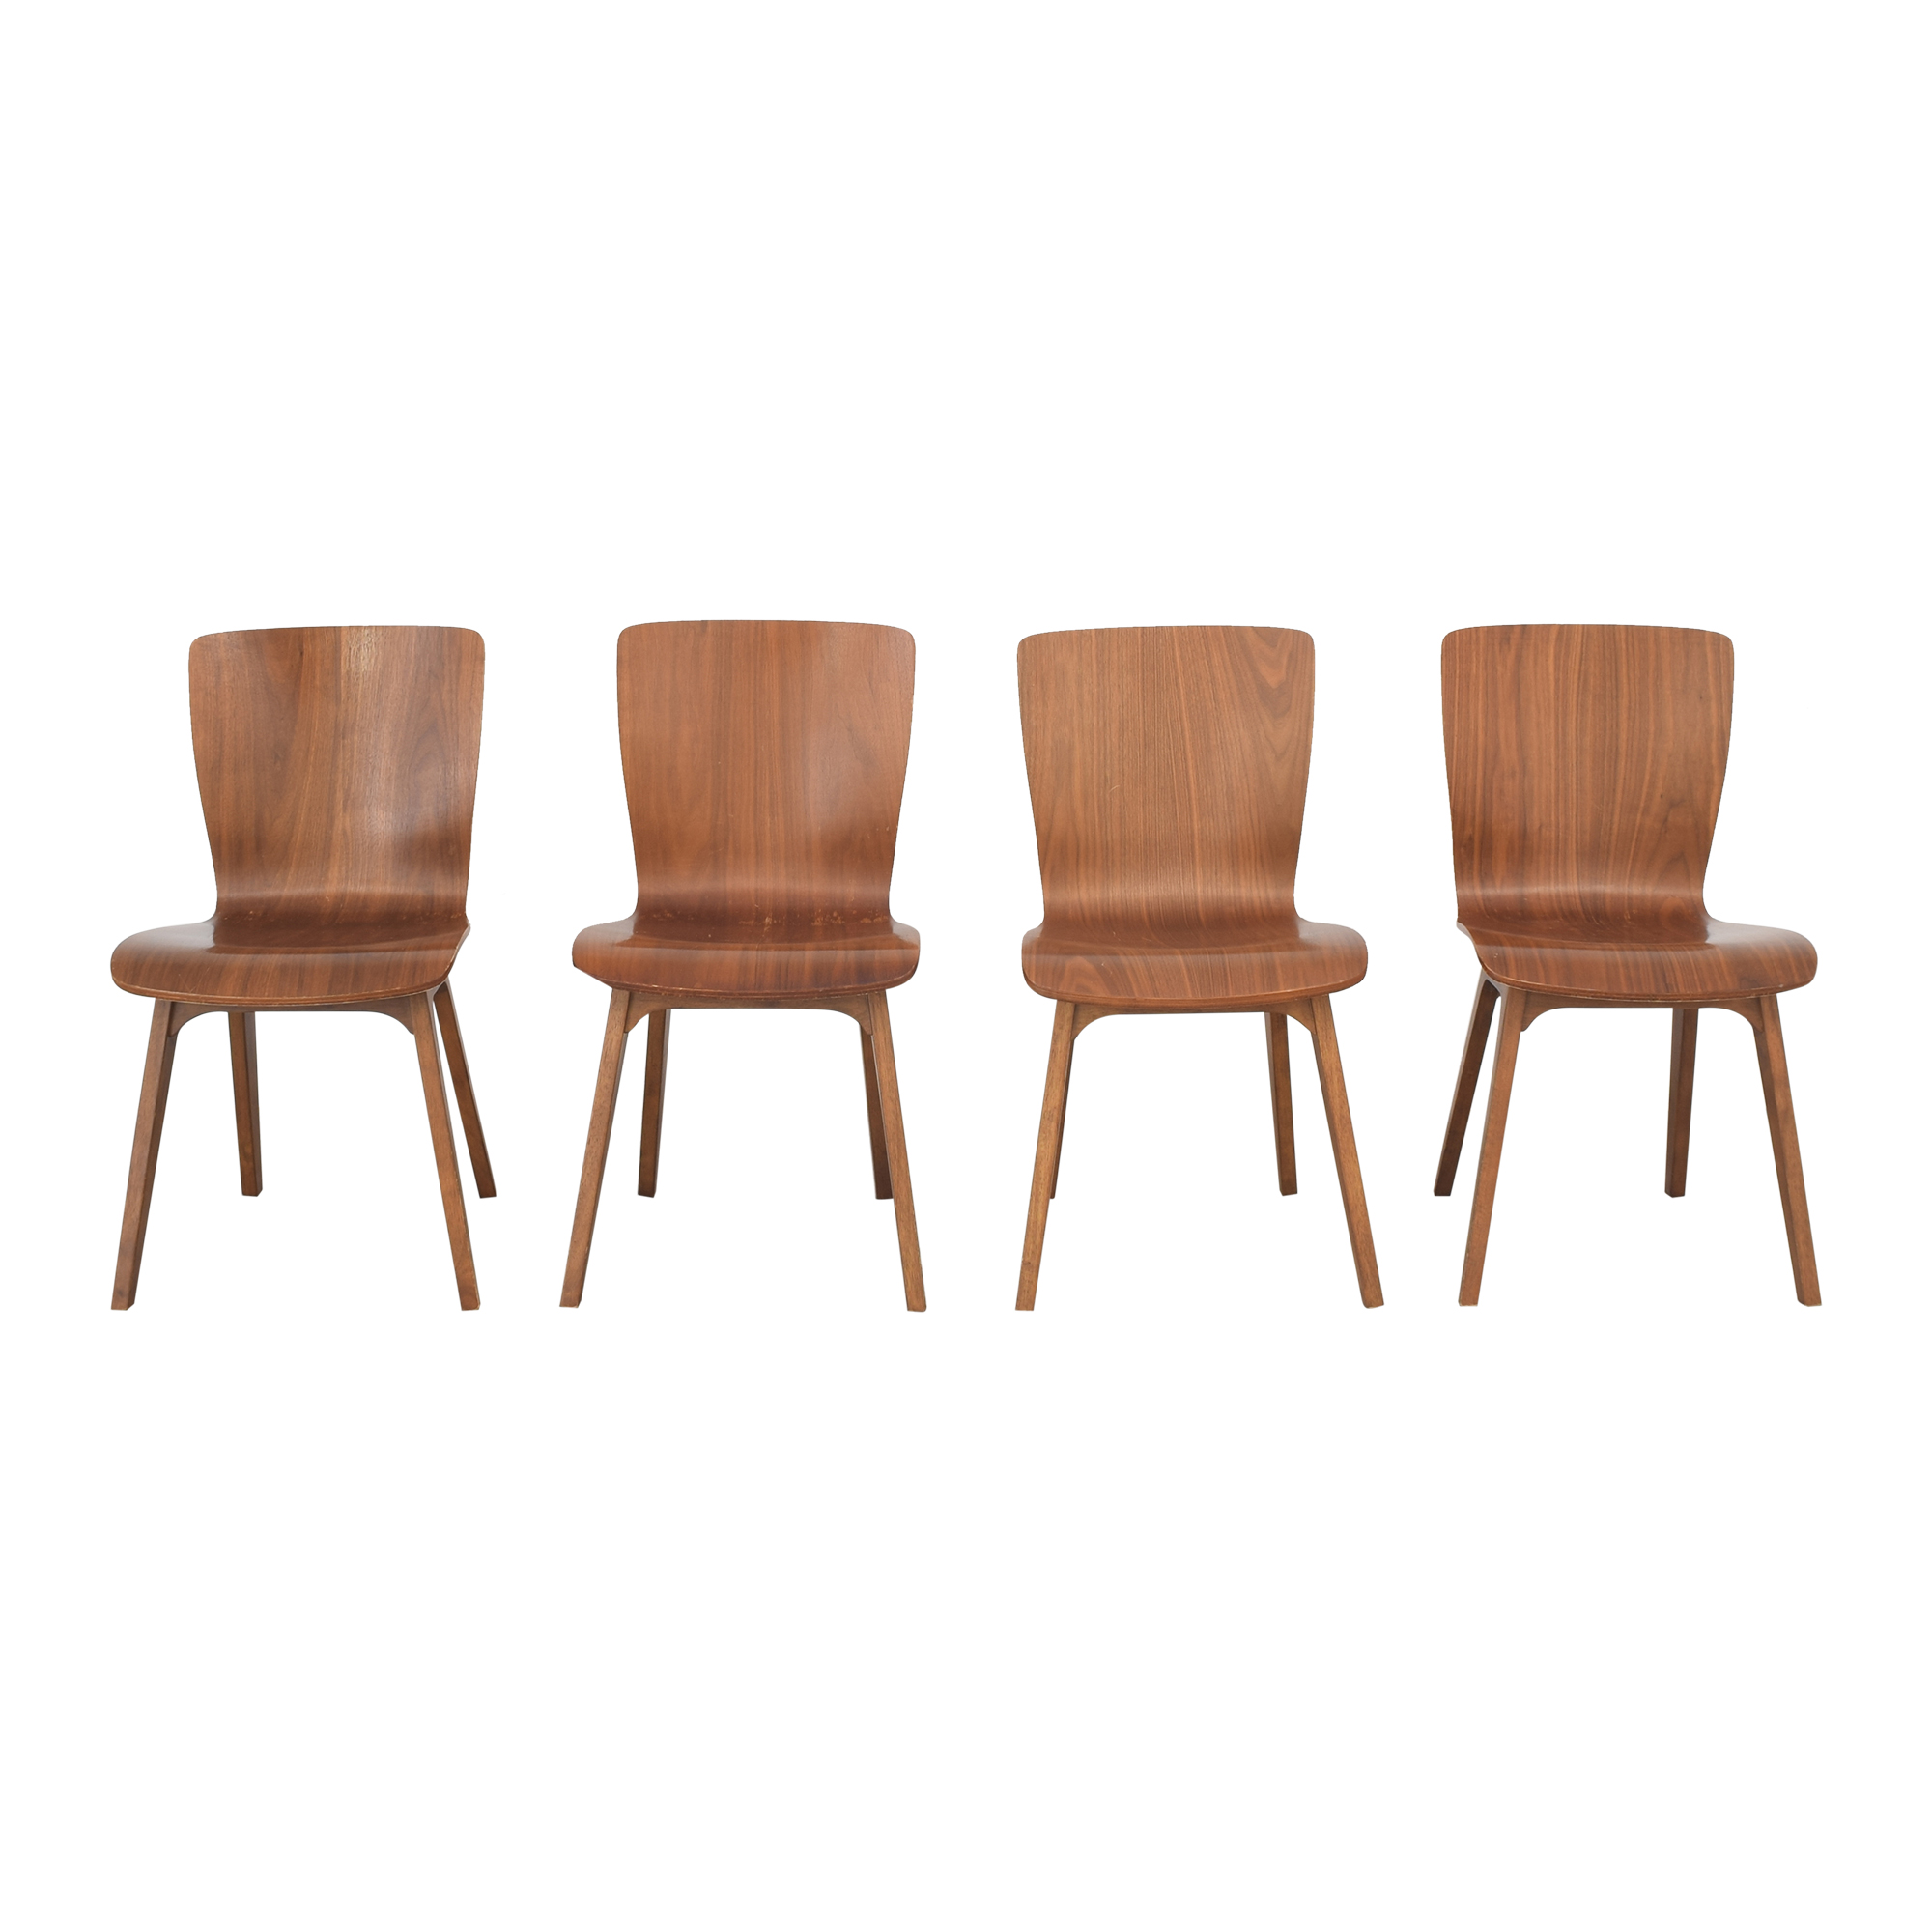 West Elm West Elm Crest Bentwood Dining Chairs ma